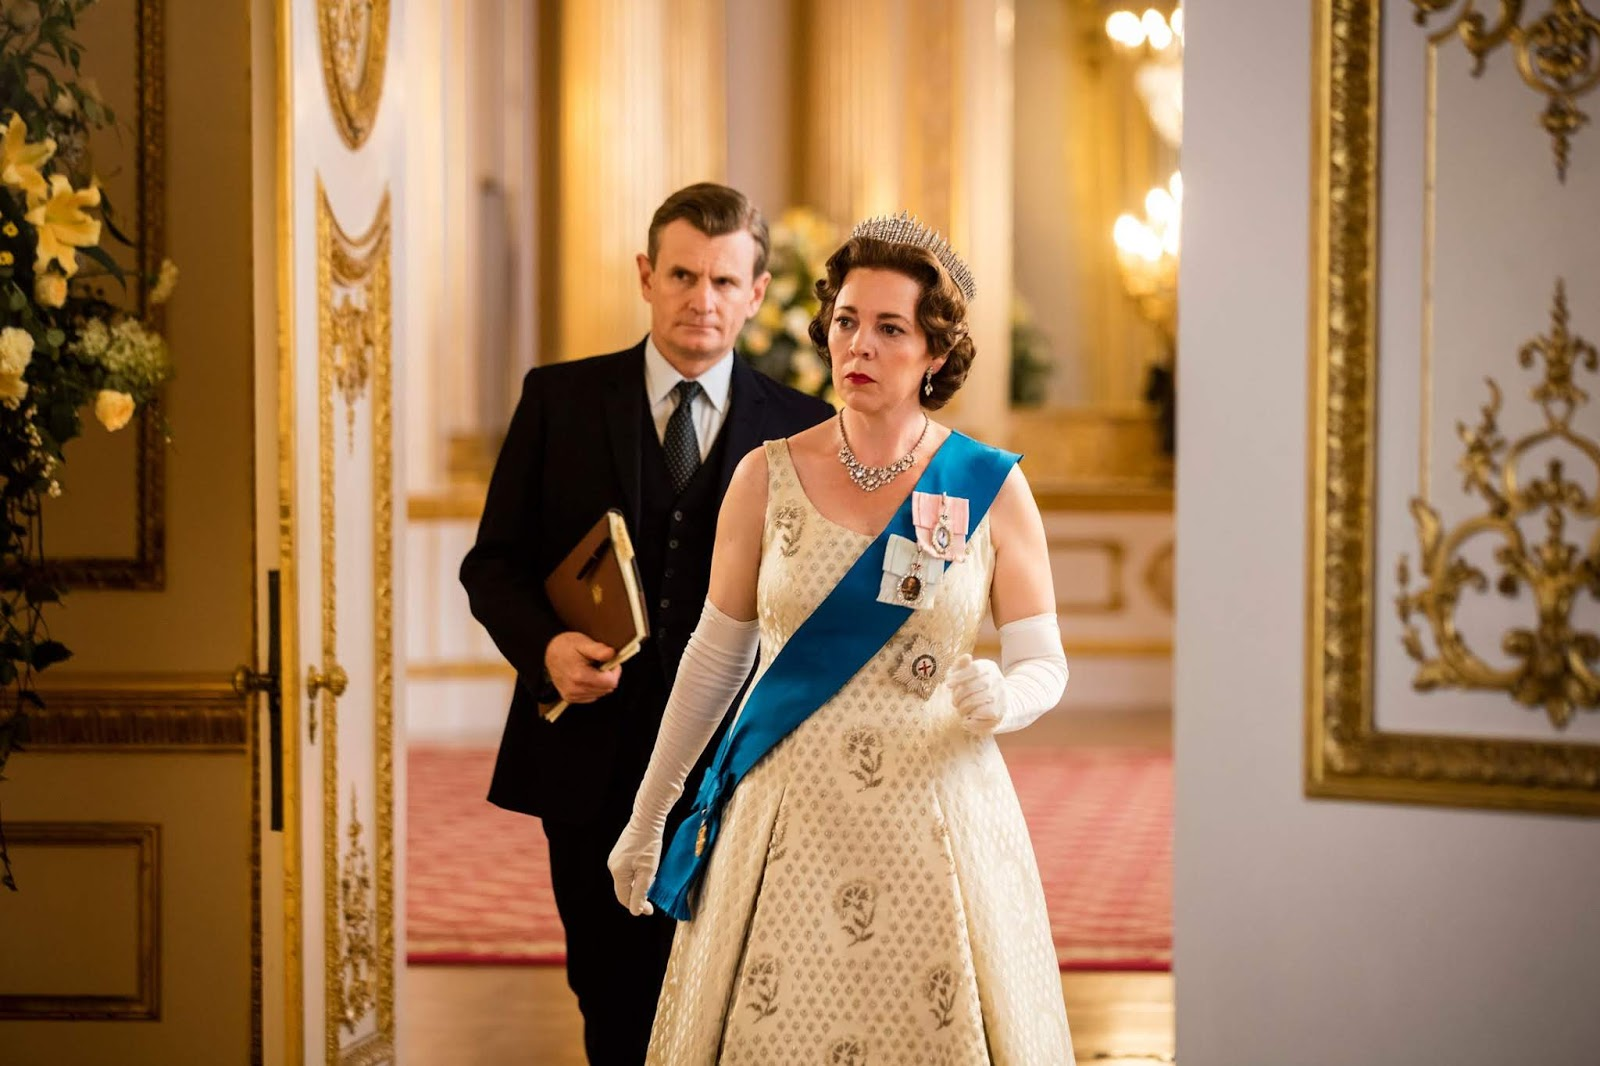 La reina Elisabeth II en le tercera temporada de The Crown